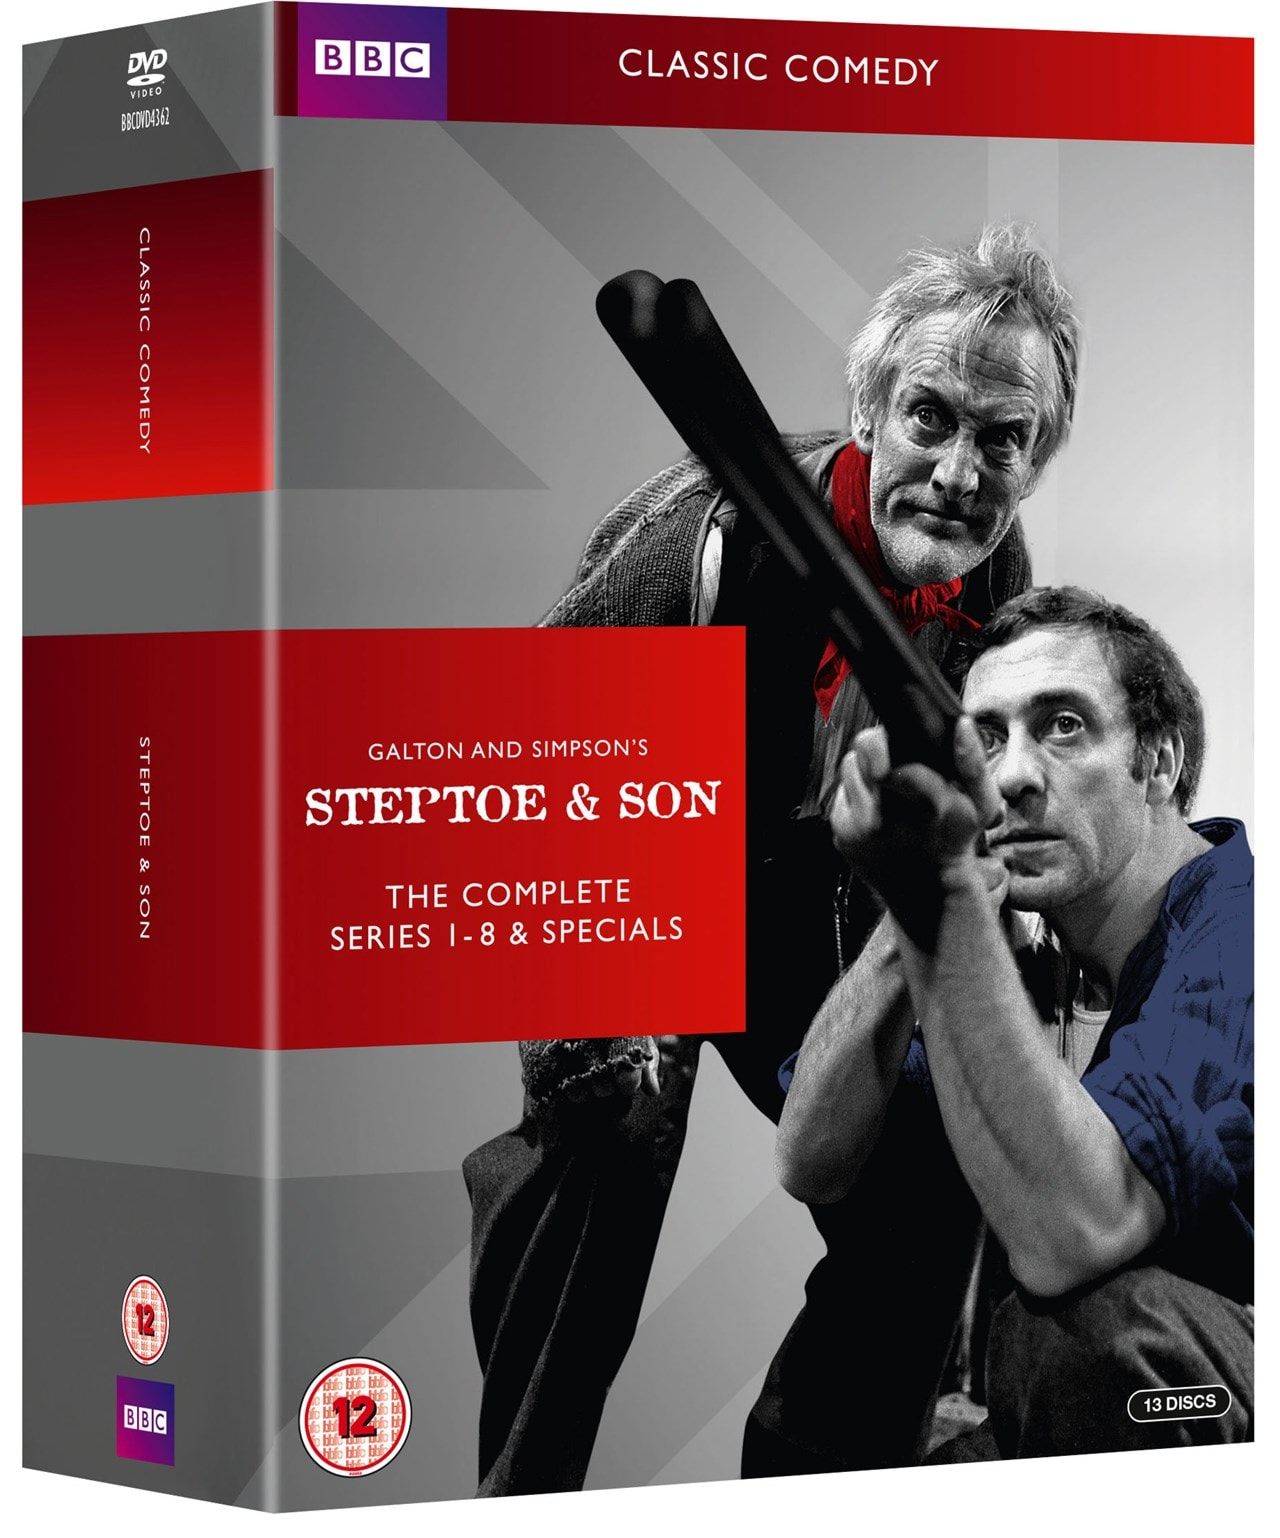 Steptoe & Son: The Complete Series 1-8 & Specials (hmv Exclusive) - 2